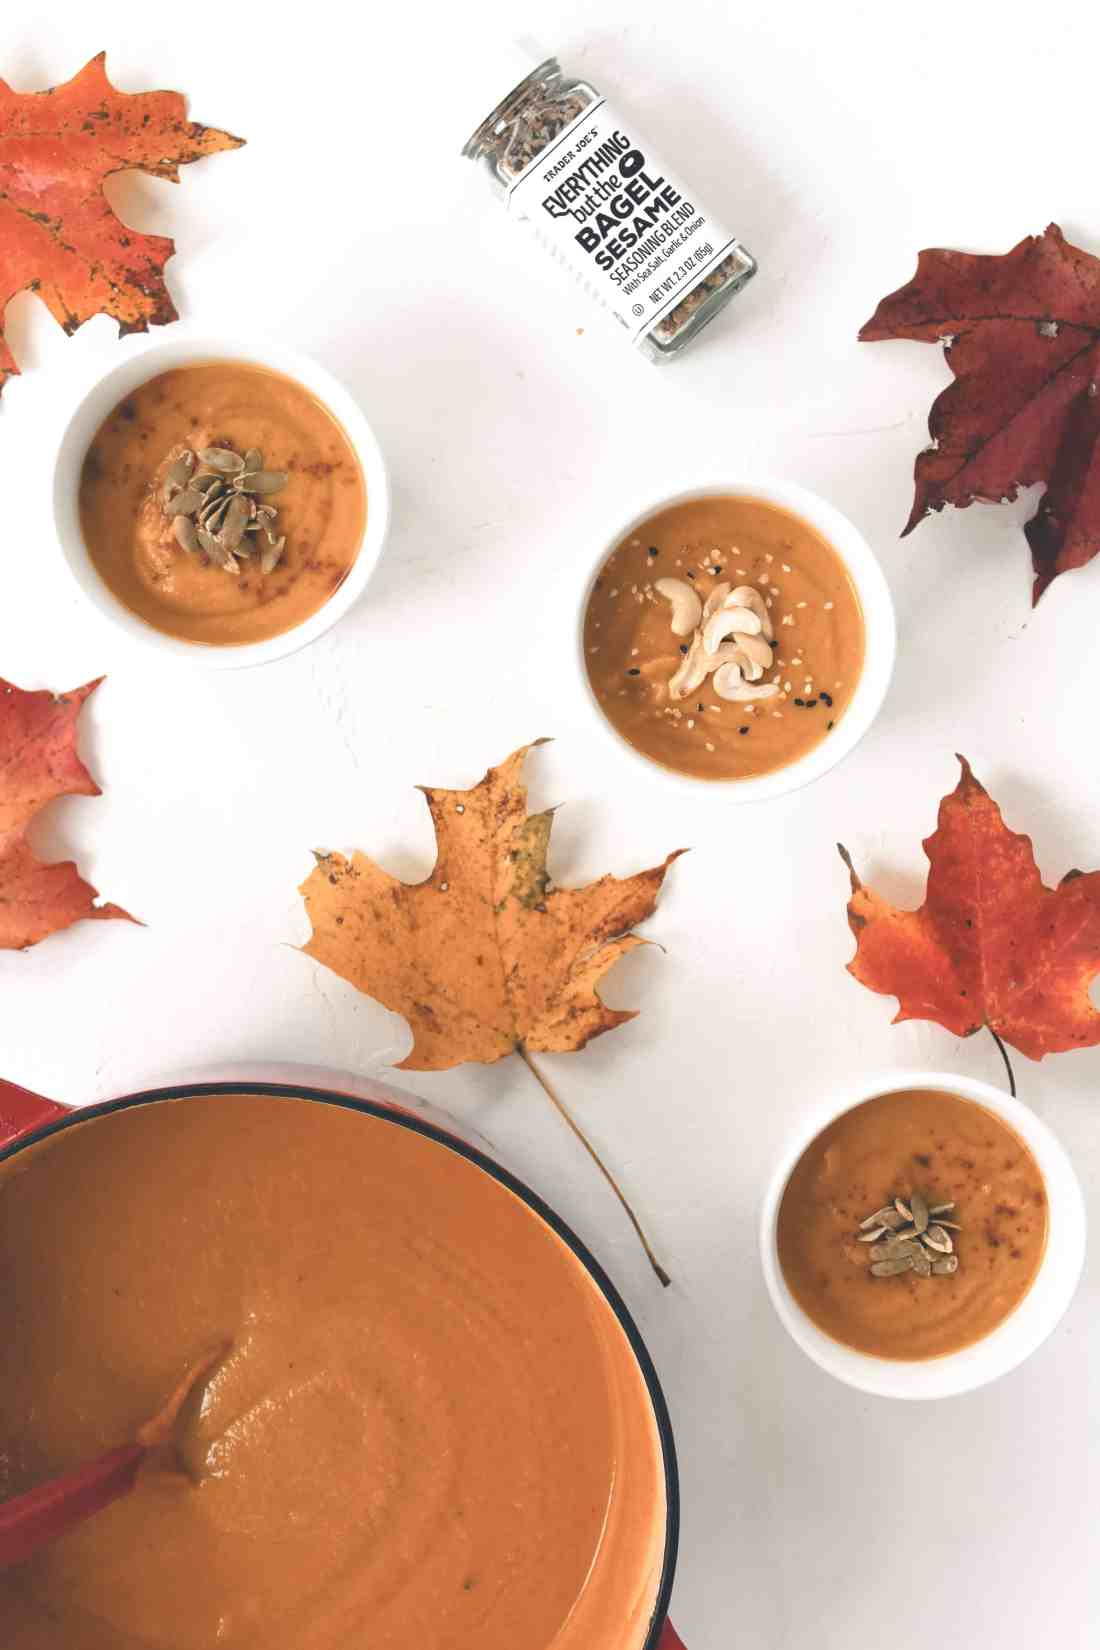 You can enjoy this Butternut & Delicata Squash Soup all fall & winter long! This seasonal soup recipe is gluten free, vegan, full of sweetness, & spice!